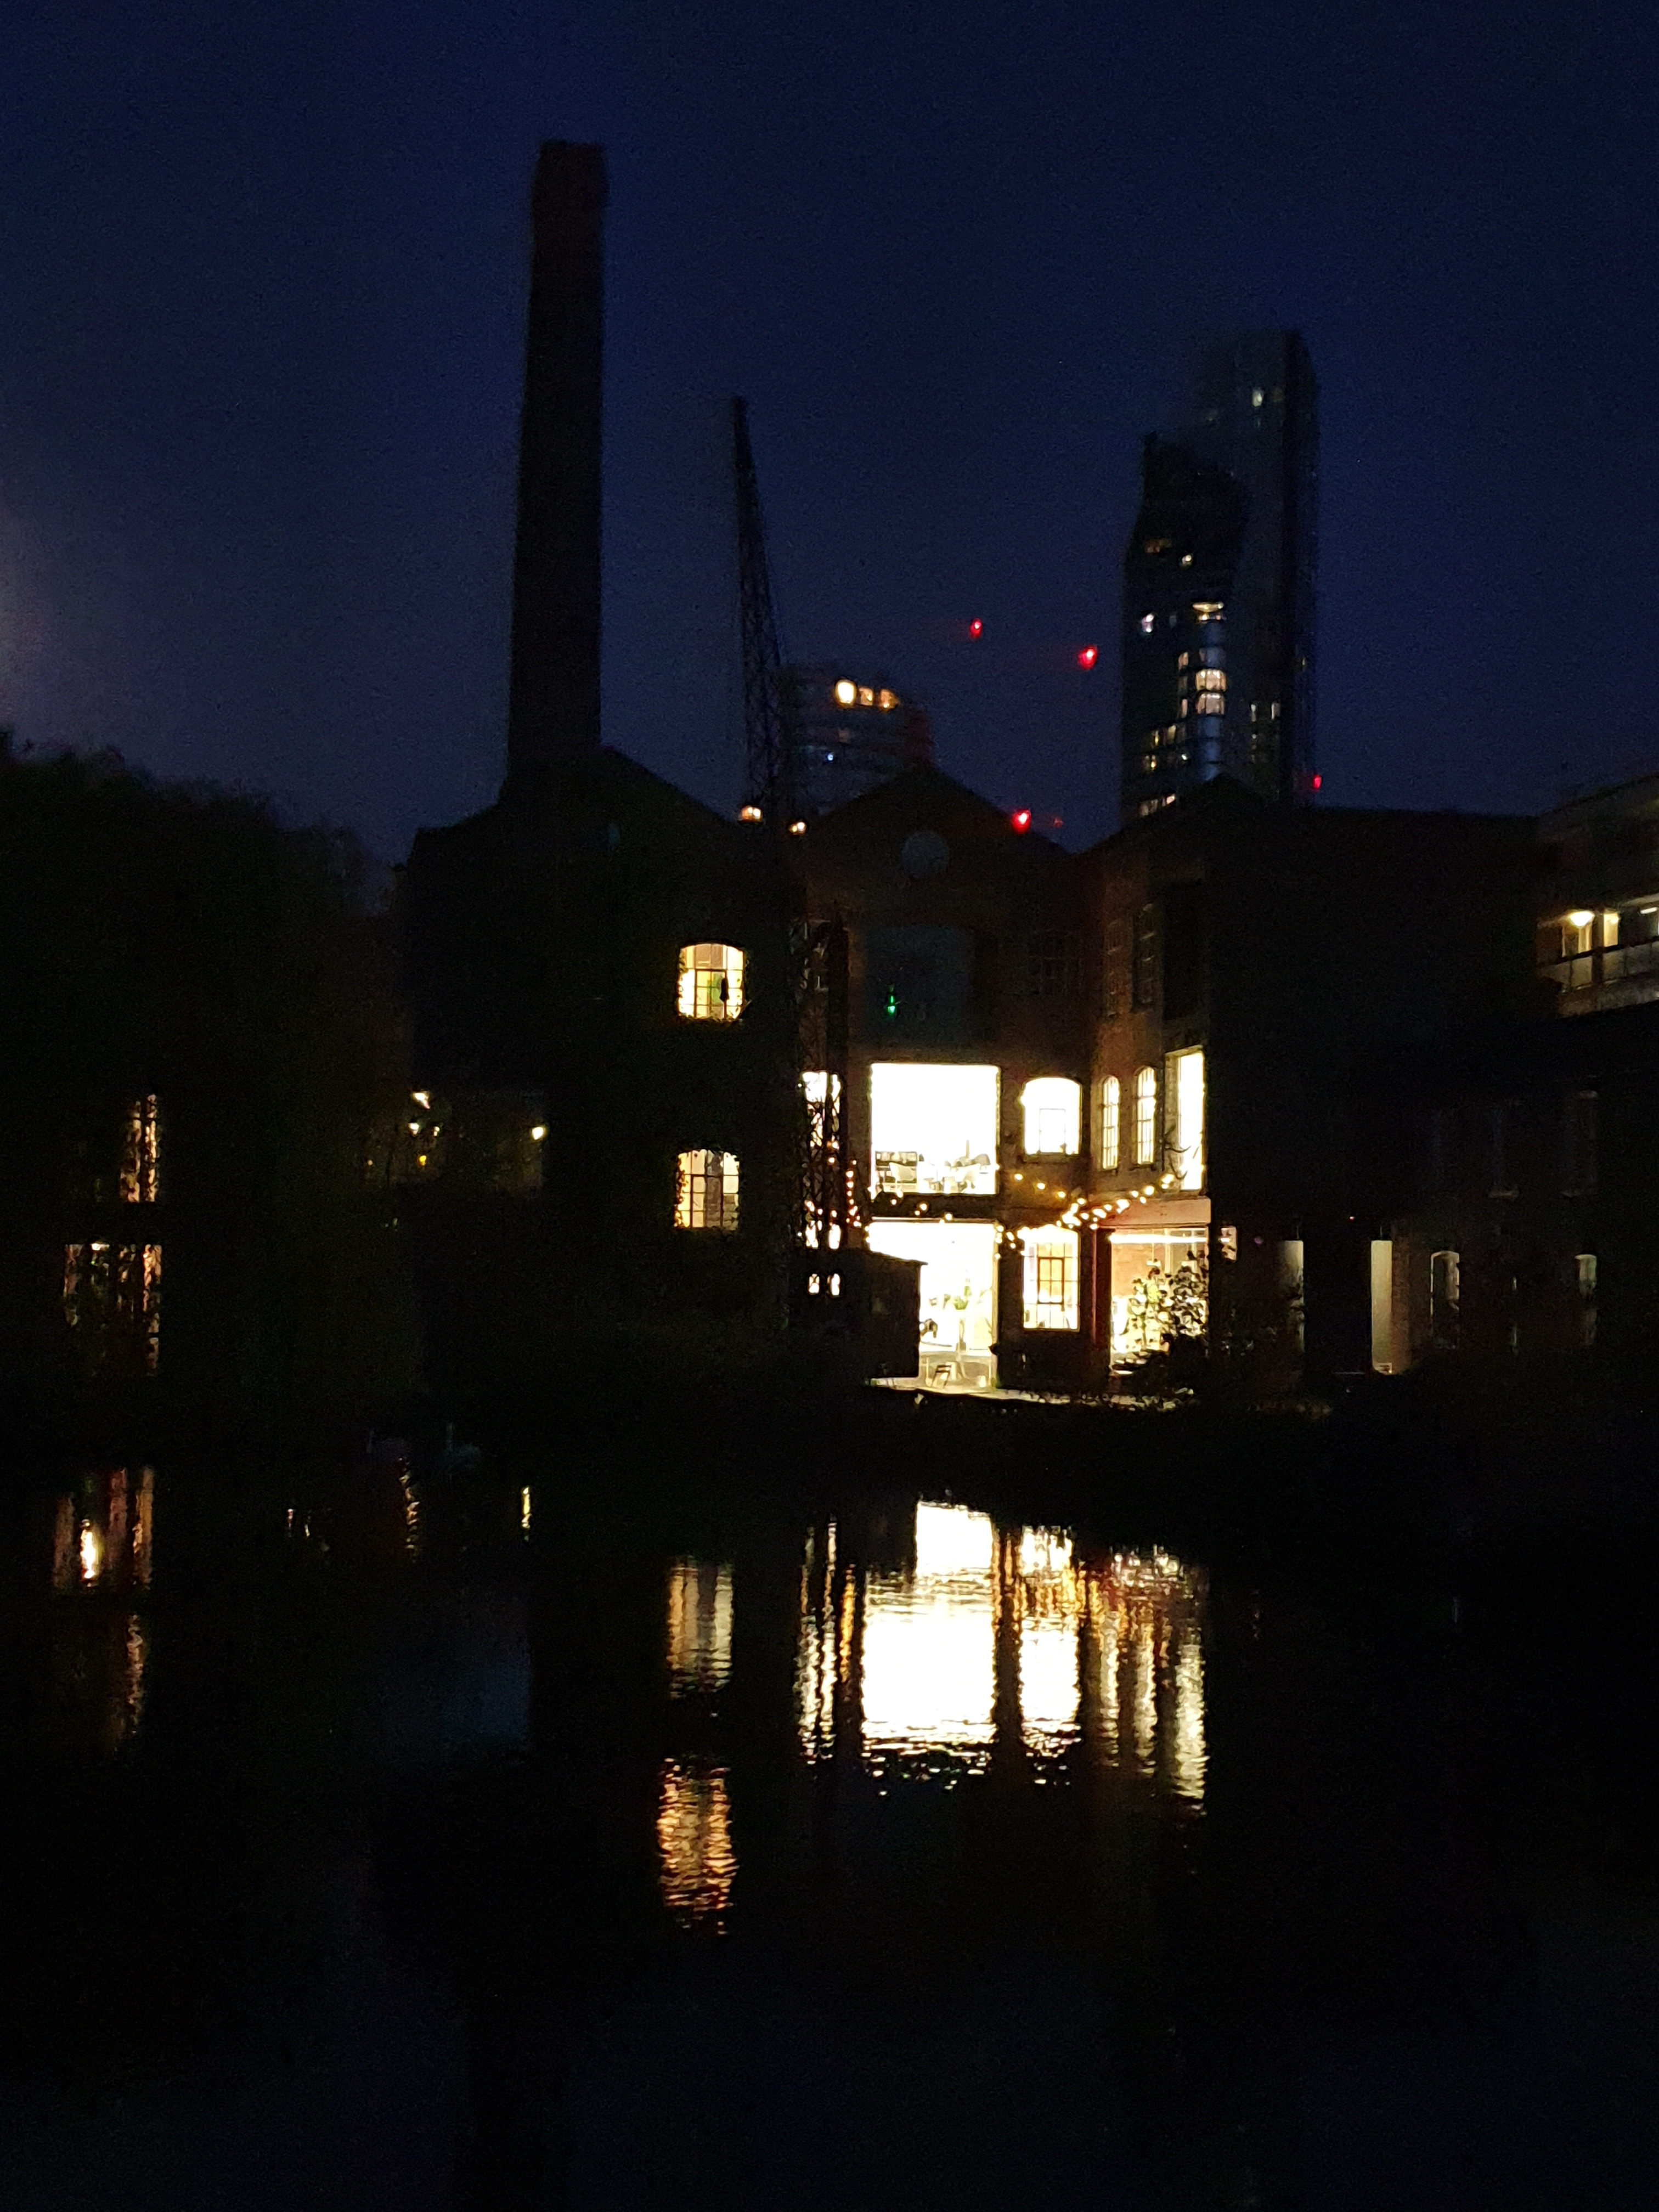 A mix of the old and the new, canalside